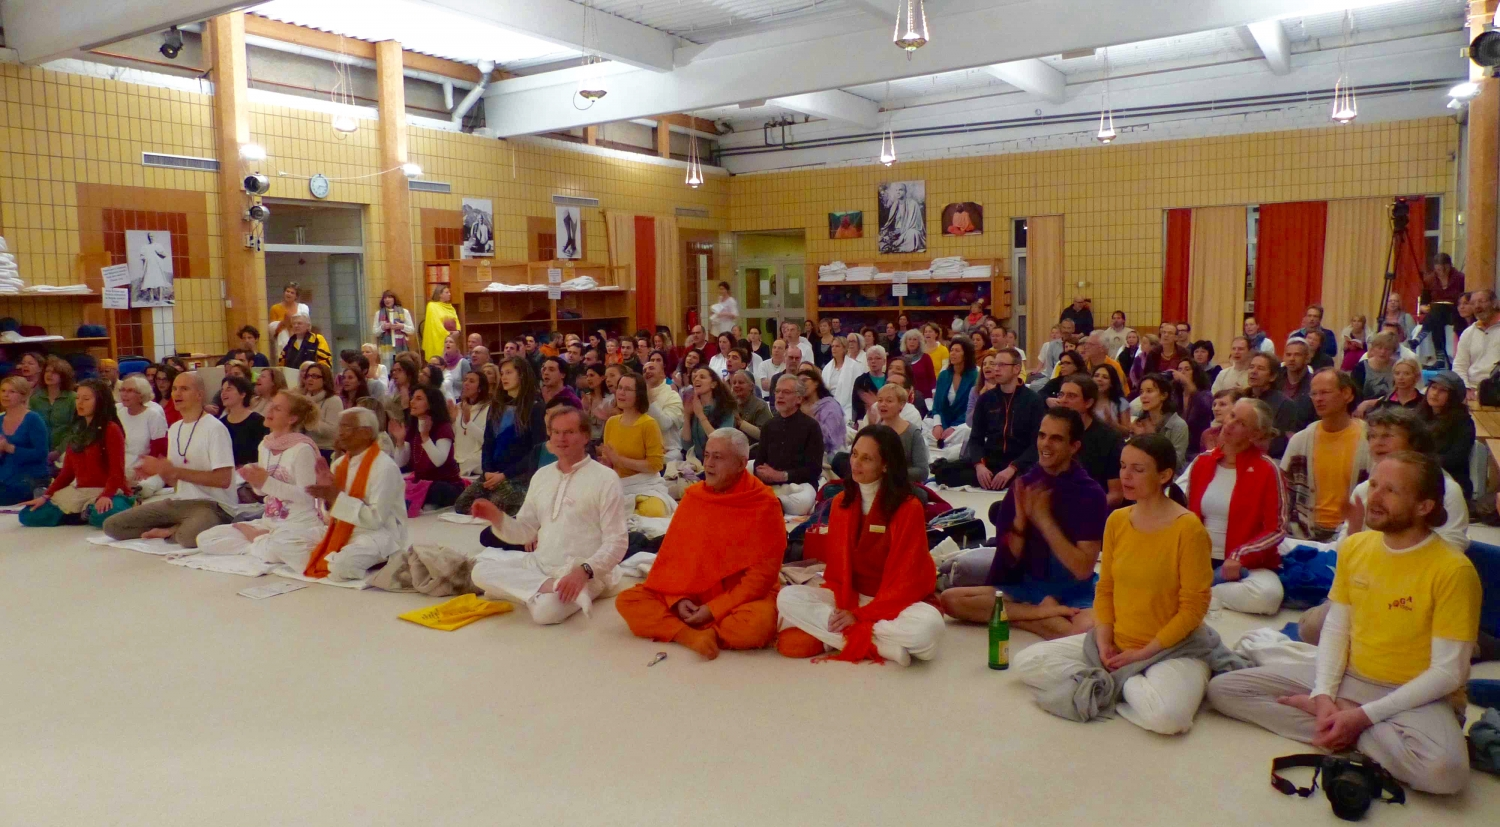 1st European Yoga Congress - 2014 - Bad-Meinberg, Hannover, Germany